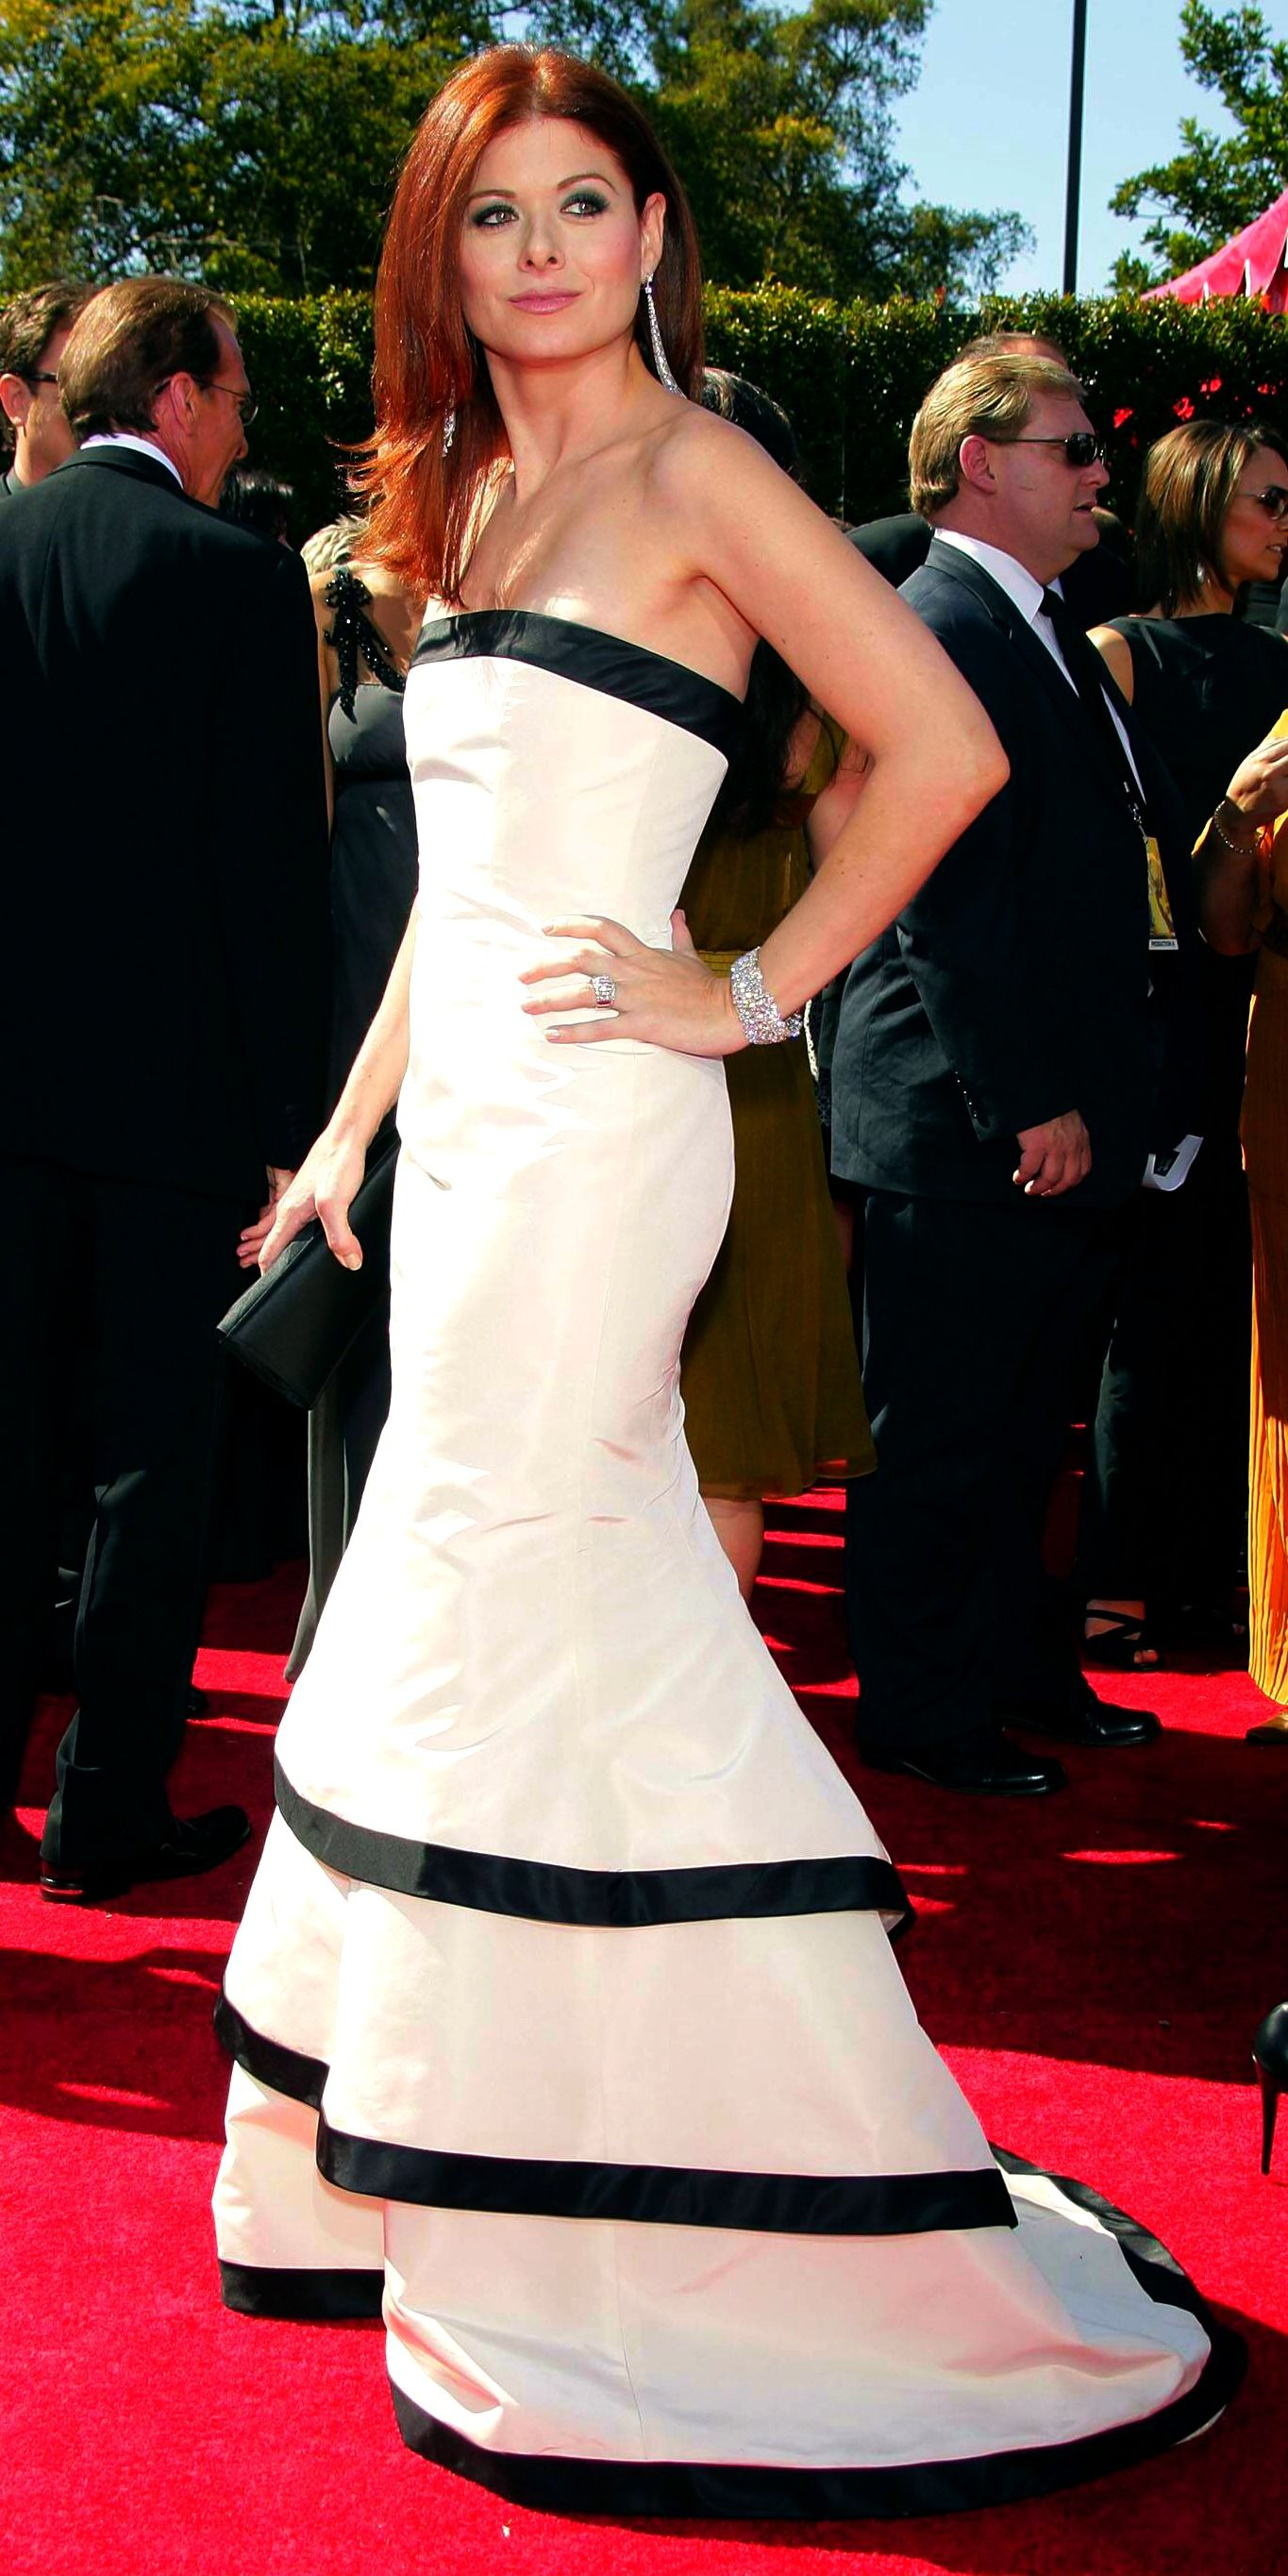 Pin By Claudia Leal On Red Carpet Celebrity Dresses Wonderful Dress Fashion [ 2729 x 1365 Pixel ]